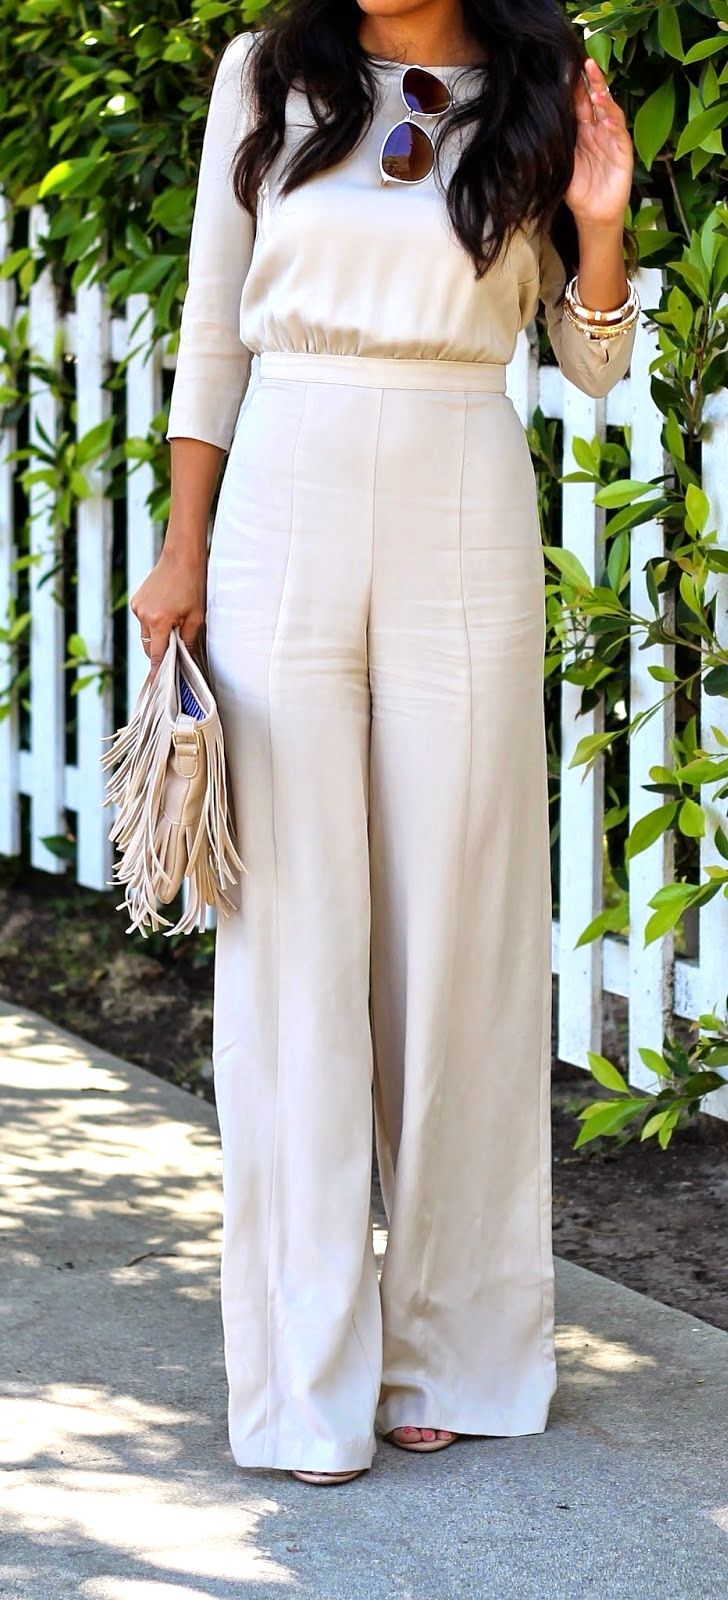 How to wear a long-sleeve jumpsuit chic enough to attend a day Spring or Summer wedding.